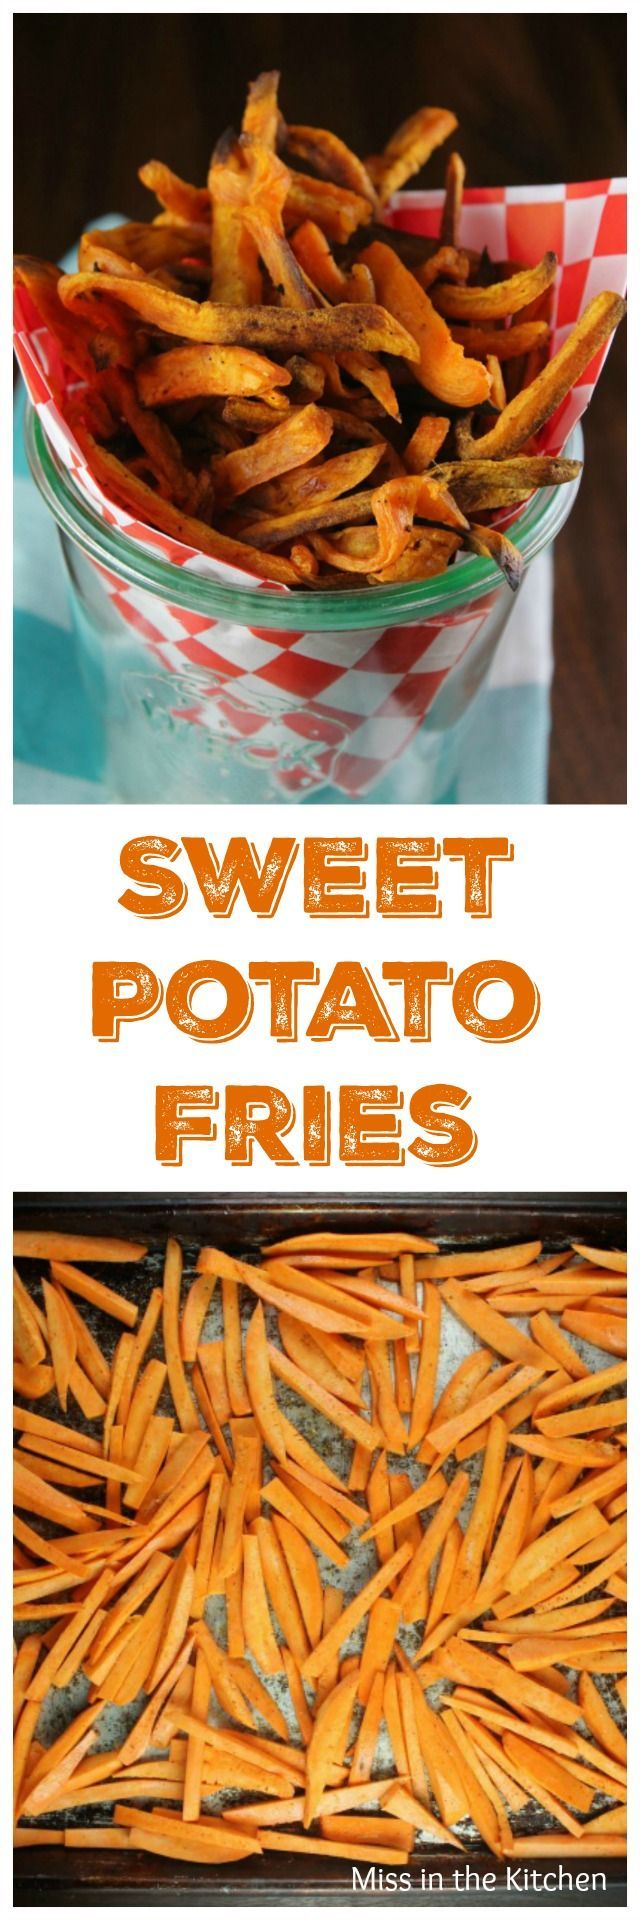 Sweet Potato Fries is the perfect side dish for burgers, steaks and more from the new TCHS Cookbook Found at MissintheKitchen.com #ad